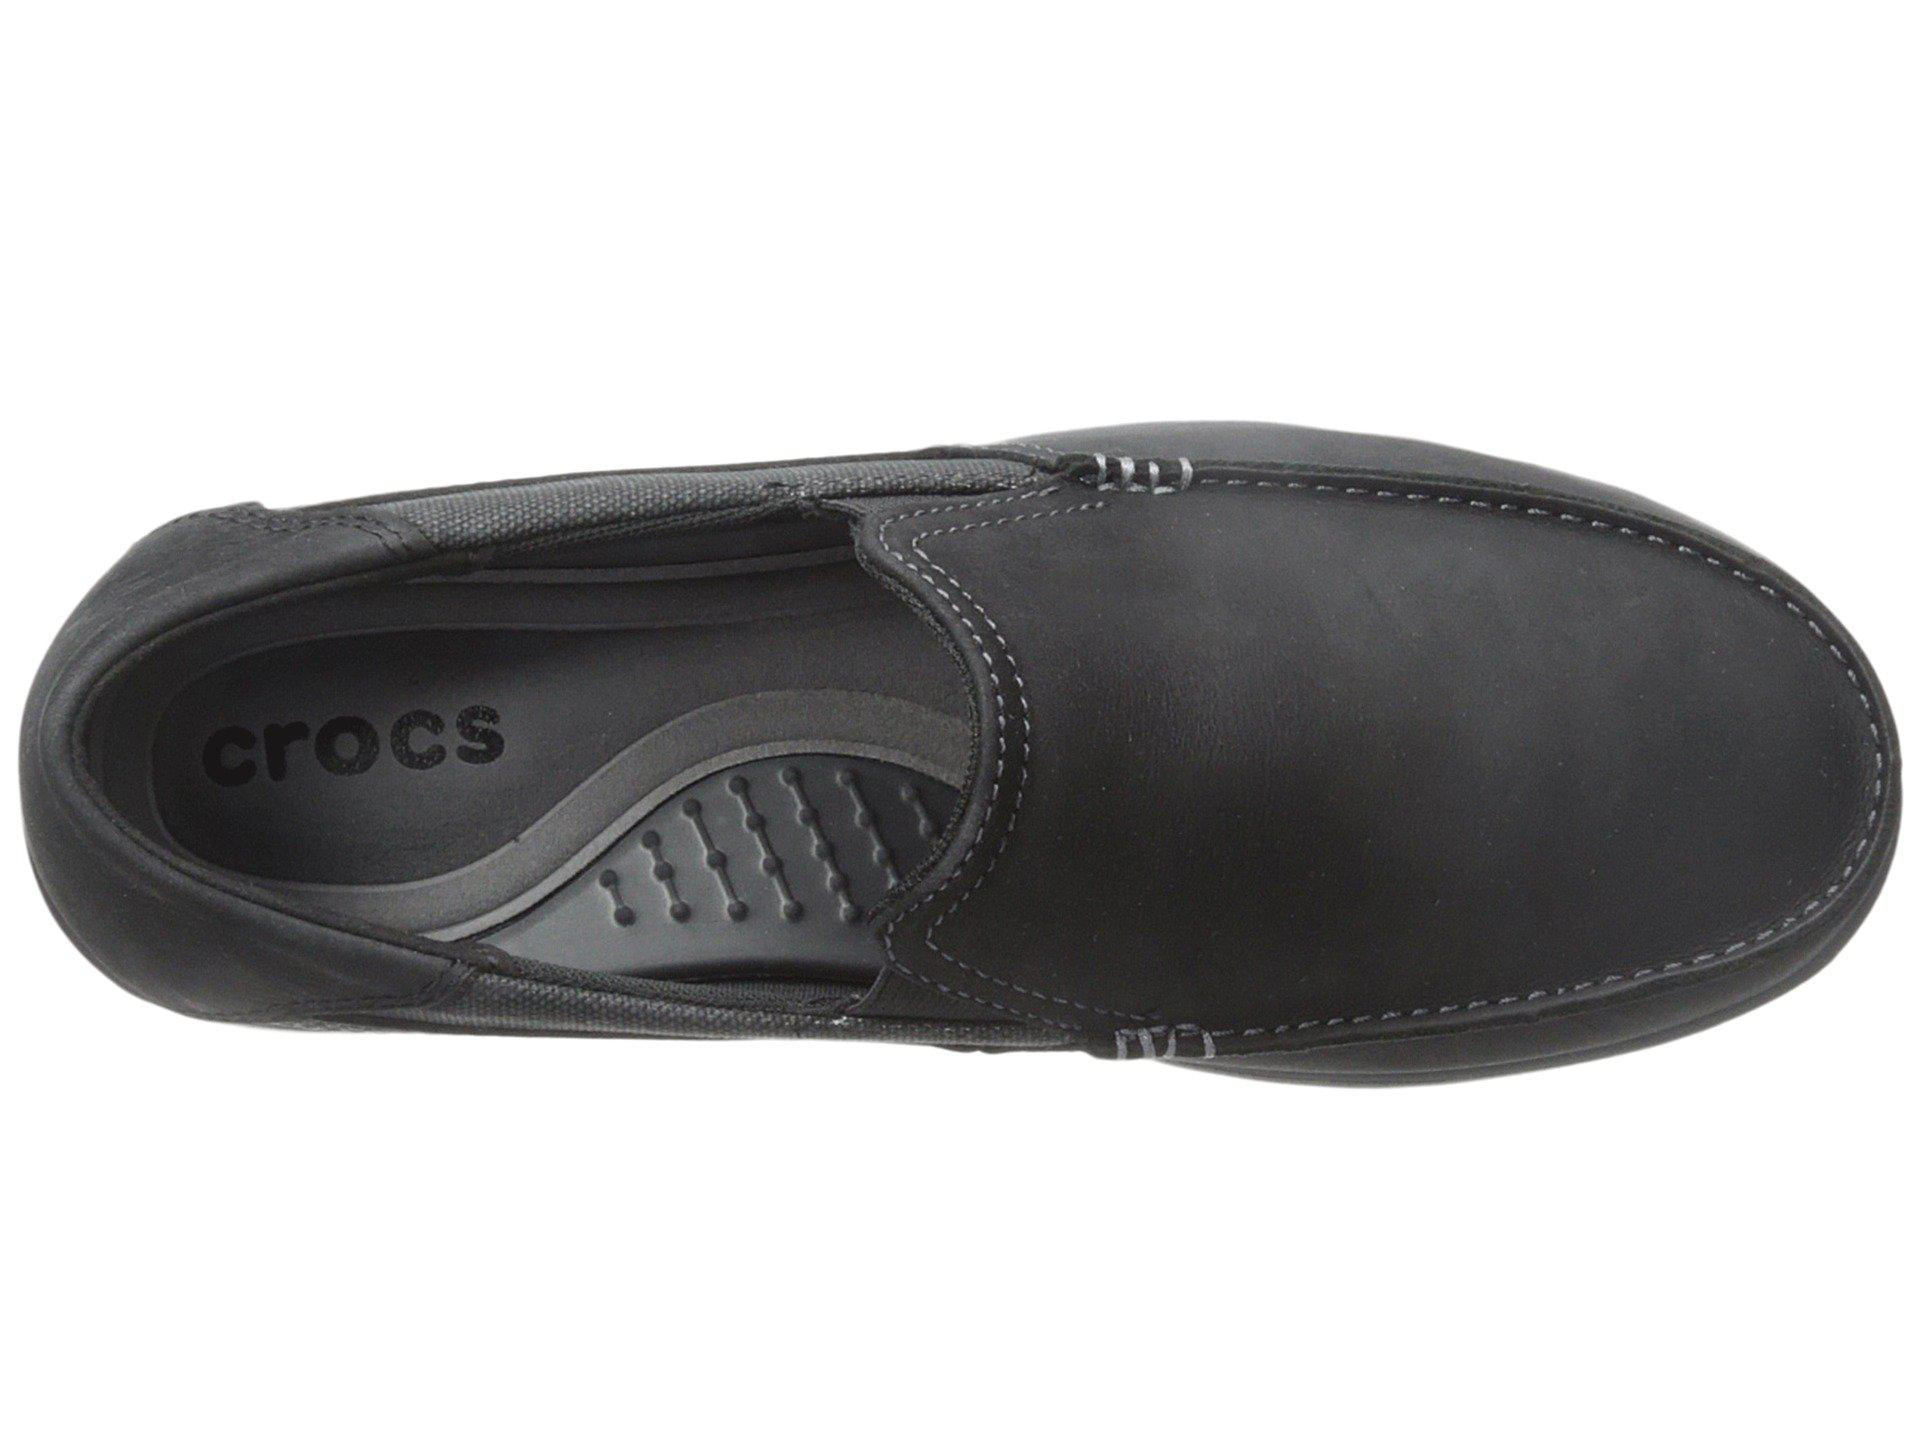 2055458f9 Crocs™ - Black Santa Cruz 2 Luxe Leather for Men - Lyst. View fullscreen